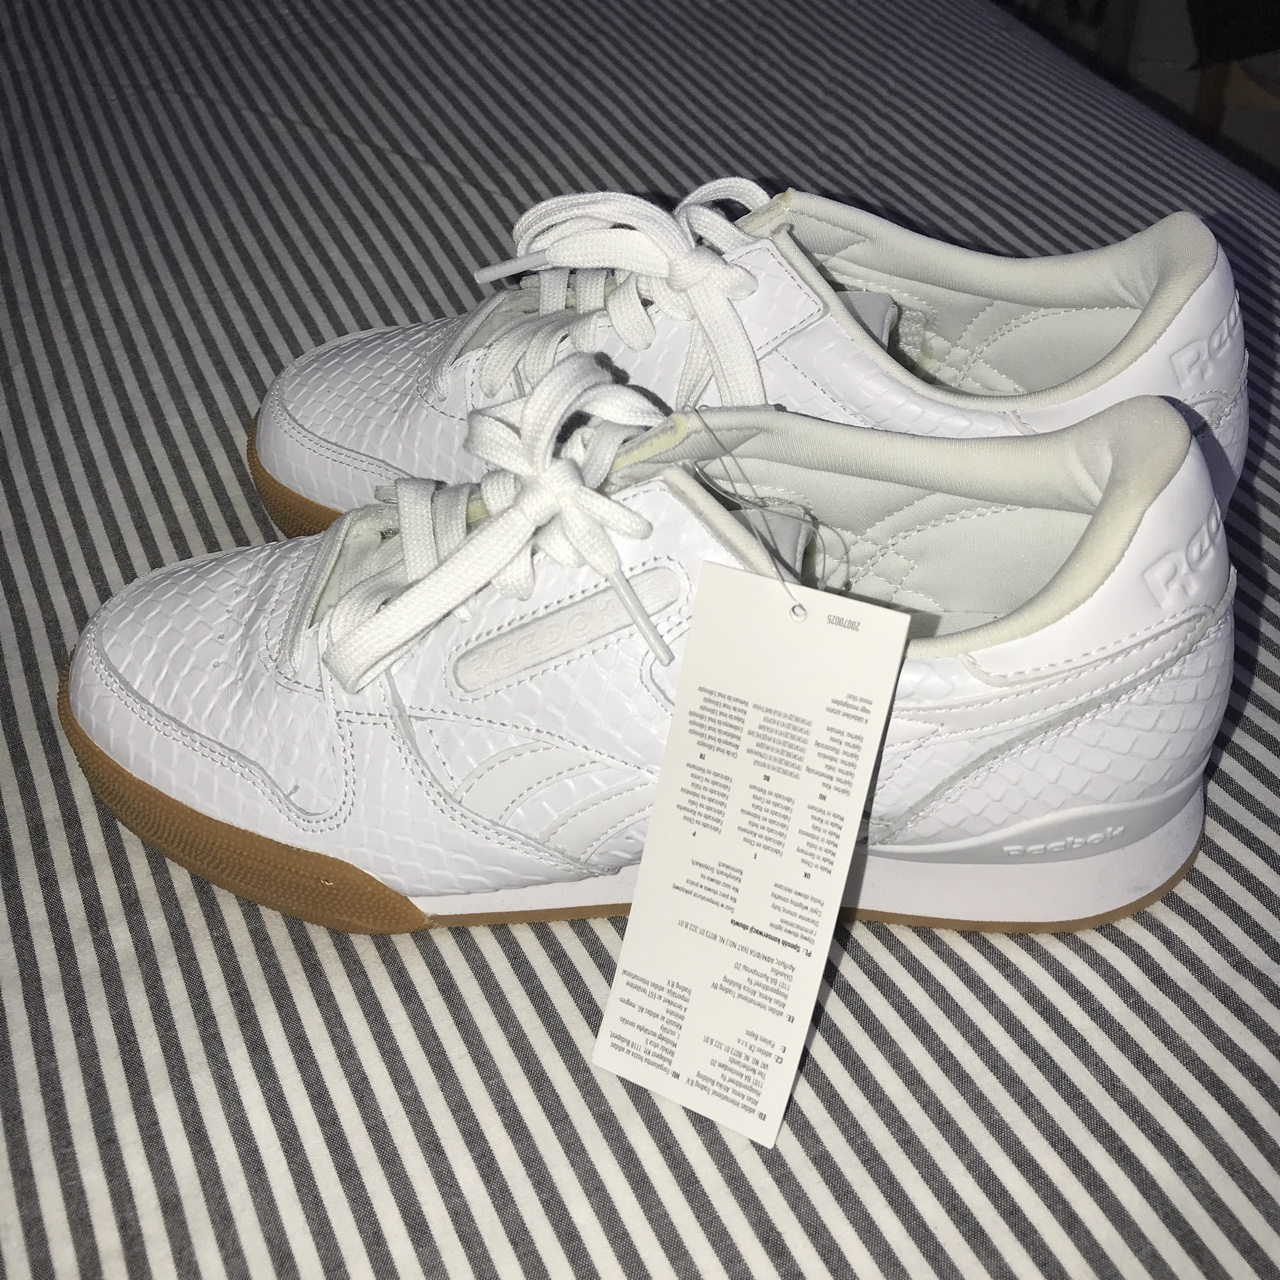 Reebok classic phase 1 pro trainers in